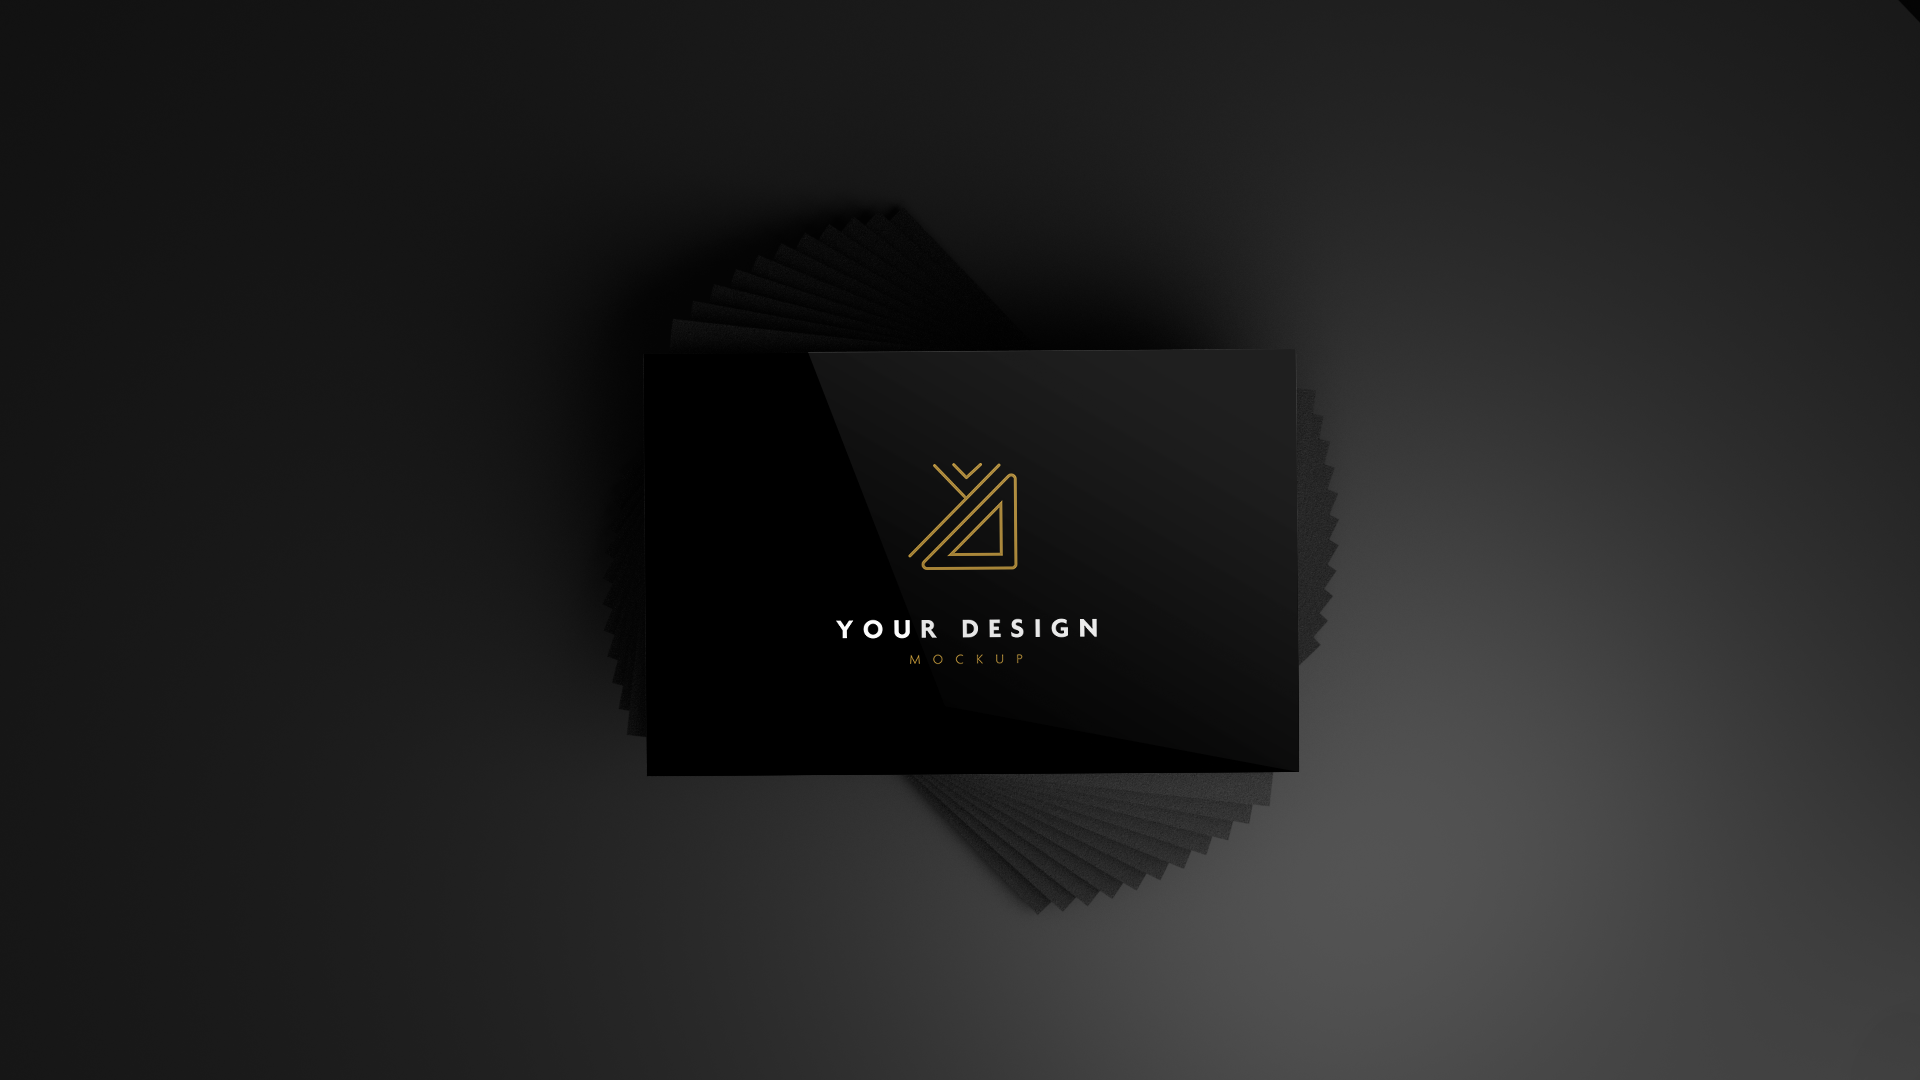 Big Black Business Card Mockup